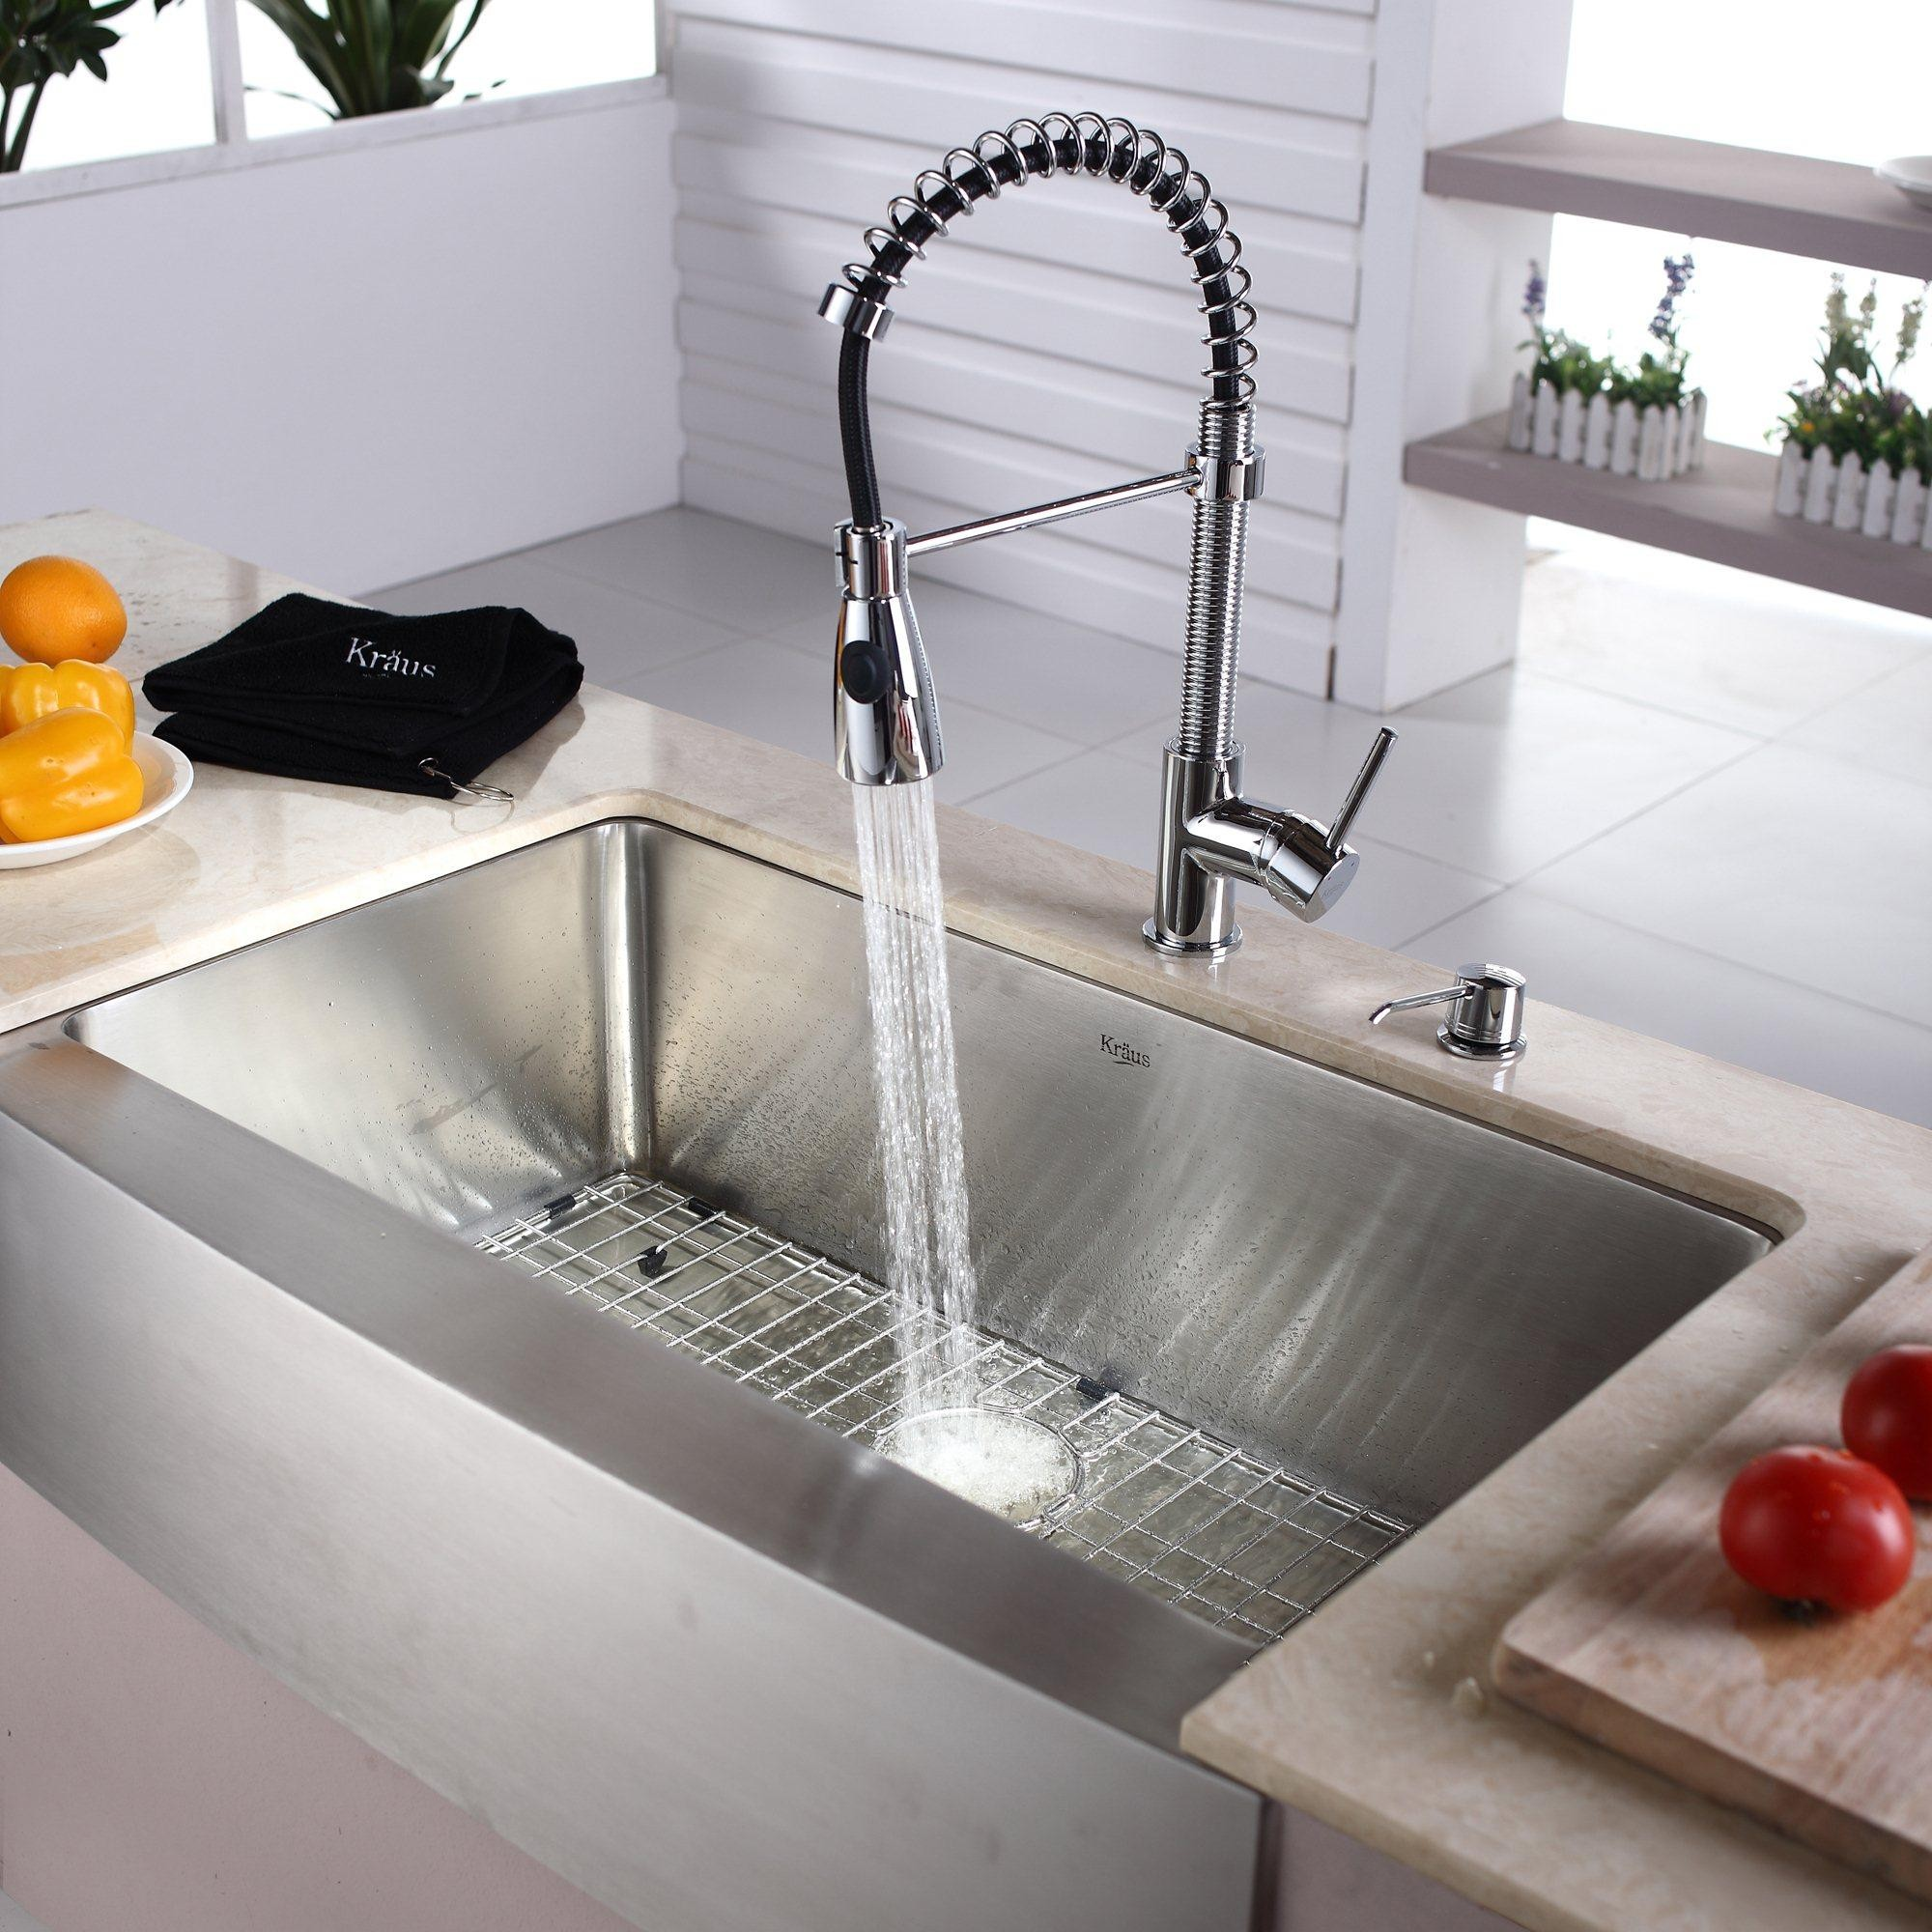 kraus khf20033kpf1612ksd30ch 33 inch farmhouse single bowl kohler farmhouse sink and faucet kitchen design